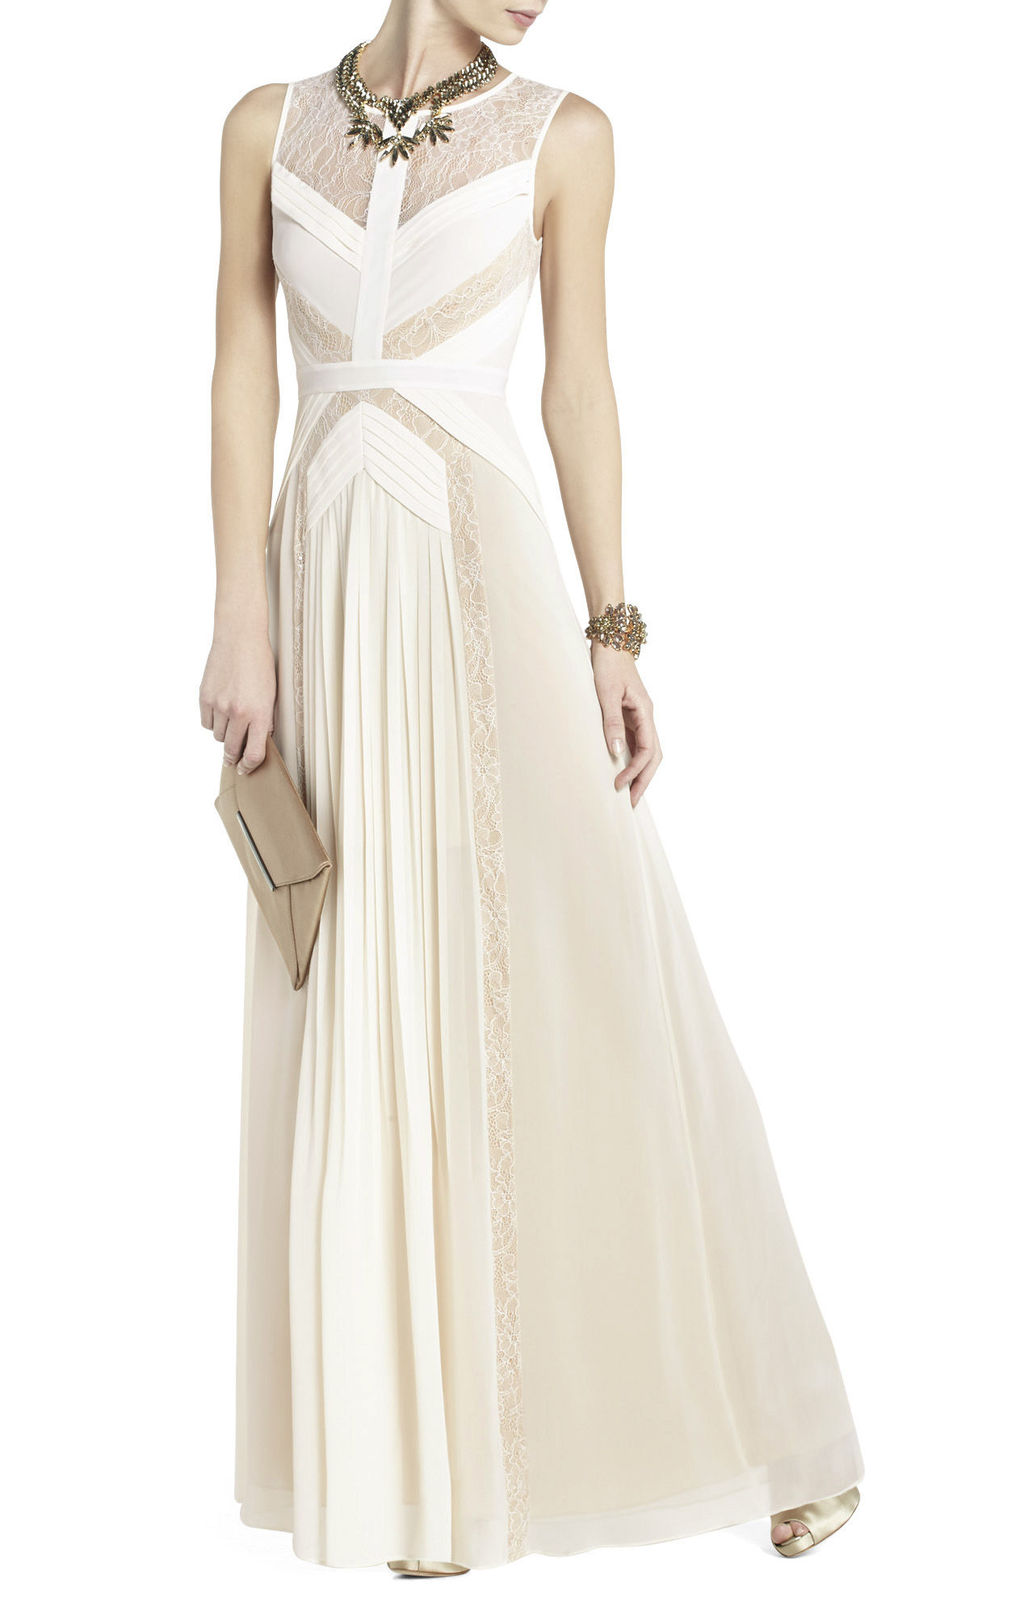 Avi-pleated-wedding-gown-with-sheer-lace-panels.full